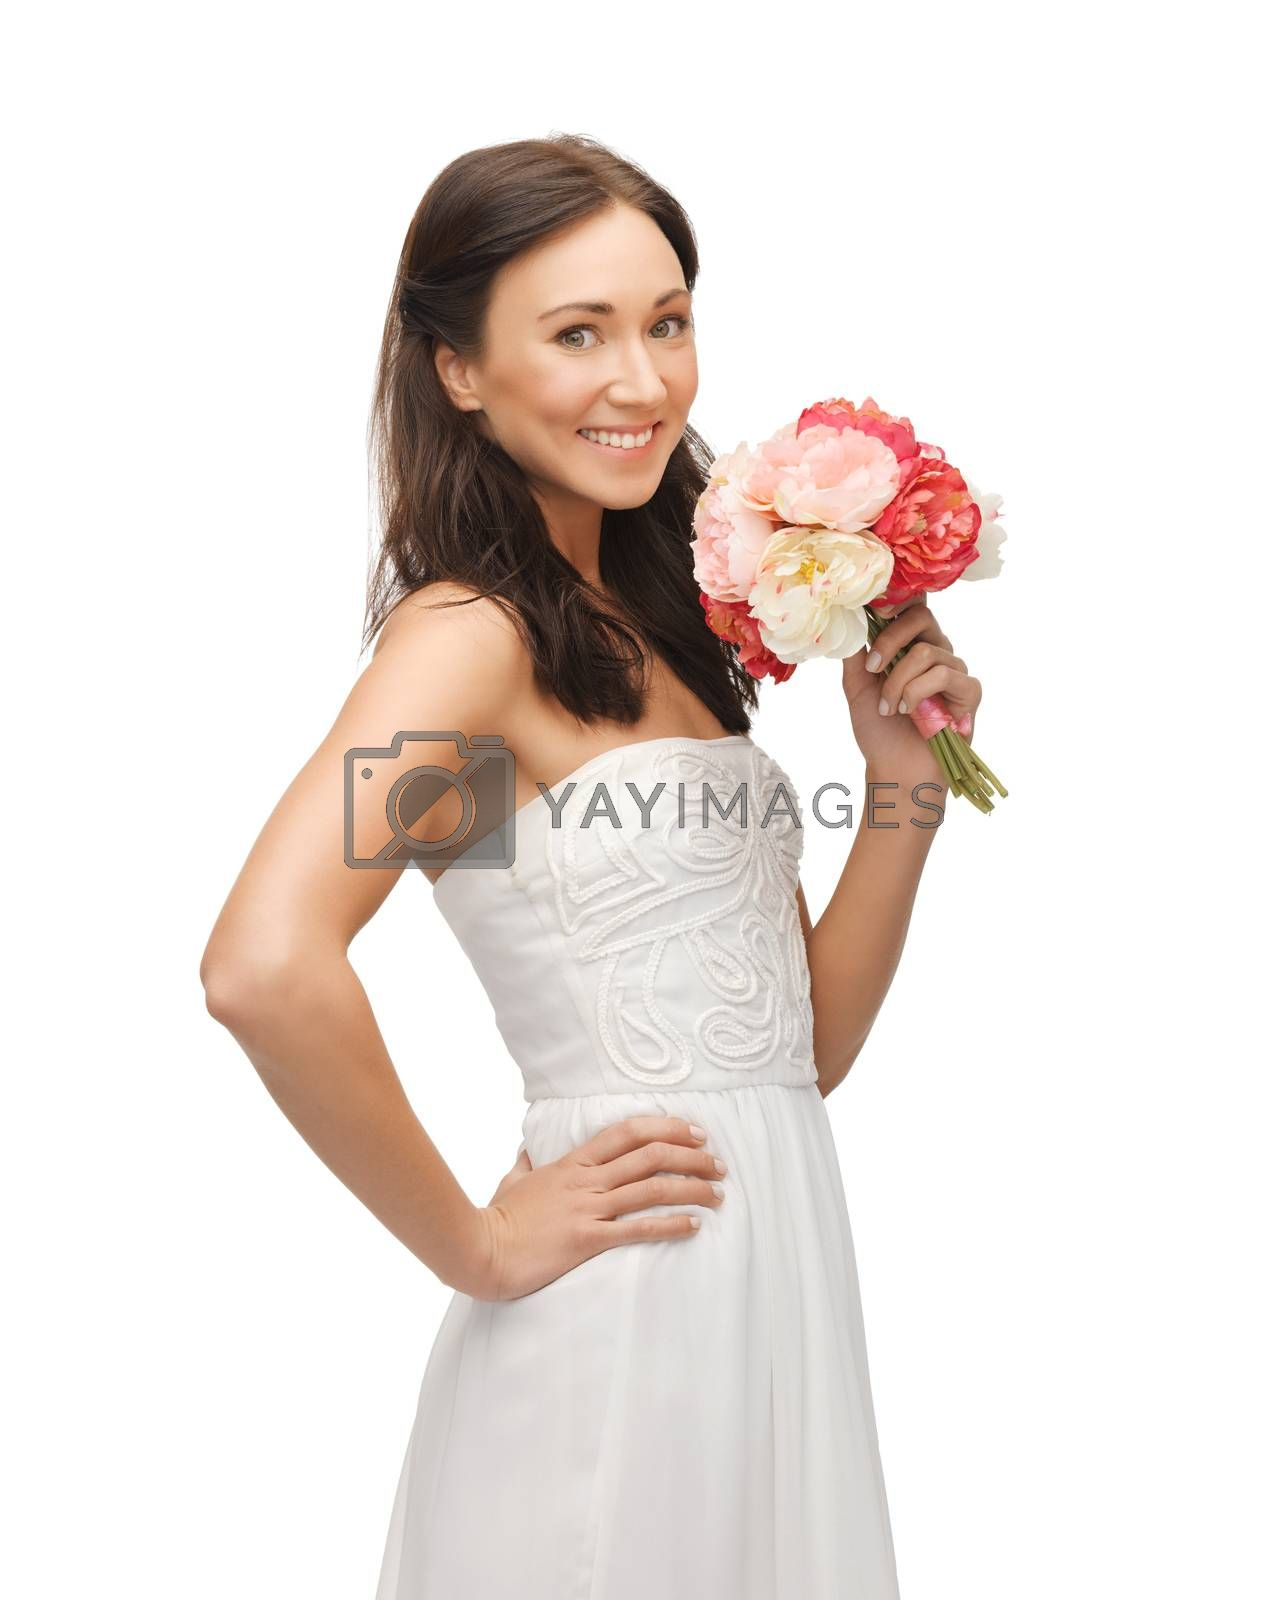 woman smelling bouquet of flowers by dolgachov